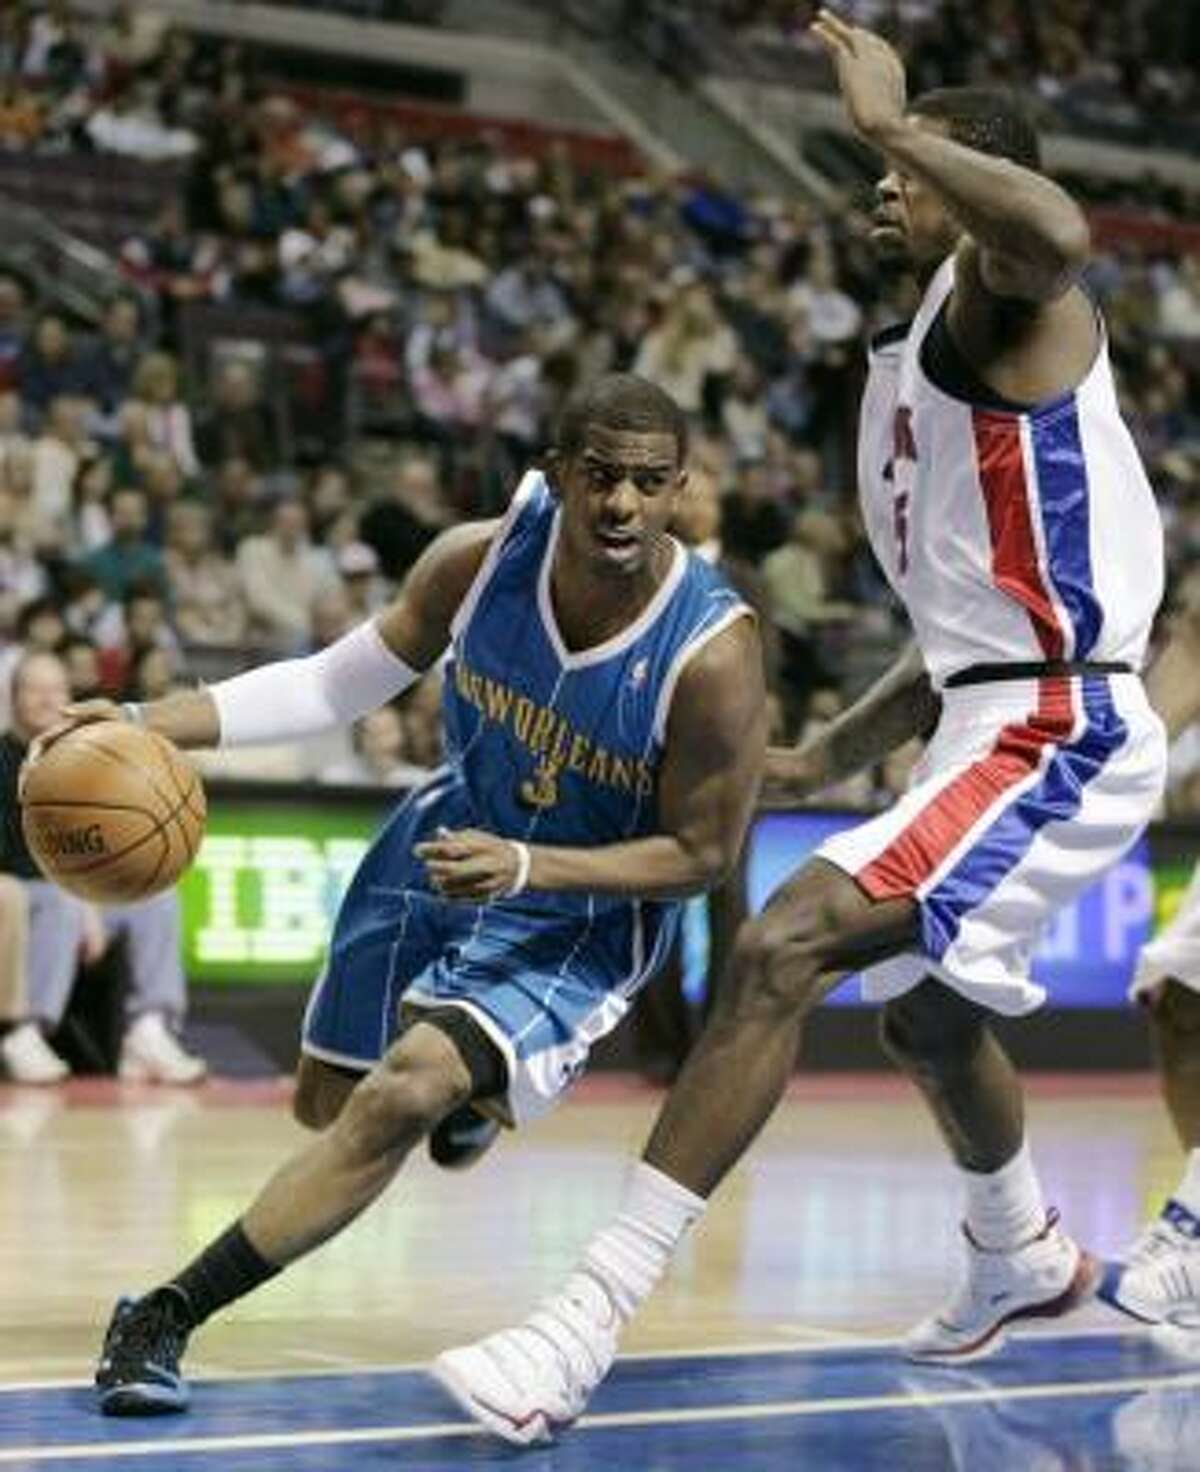 Western ConferenceChris Paul, G, New Orleans Hornets 2,134,798 votes